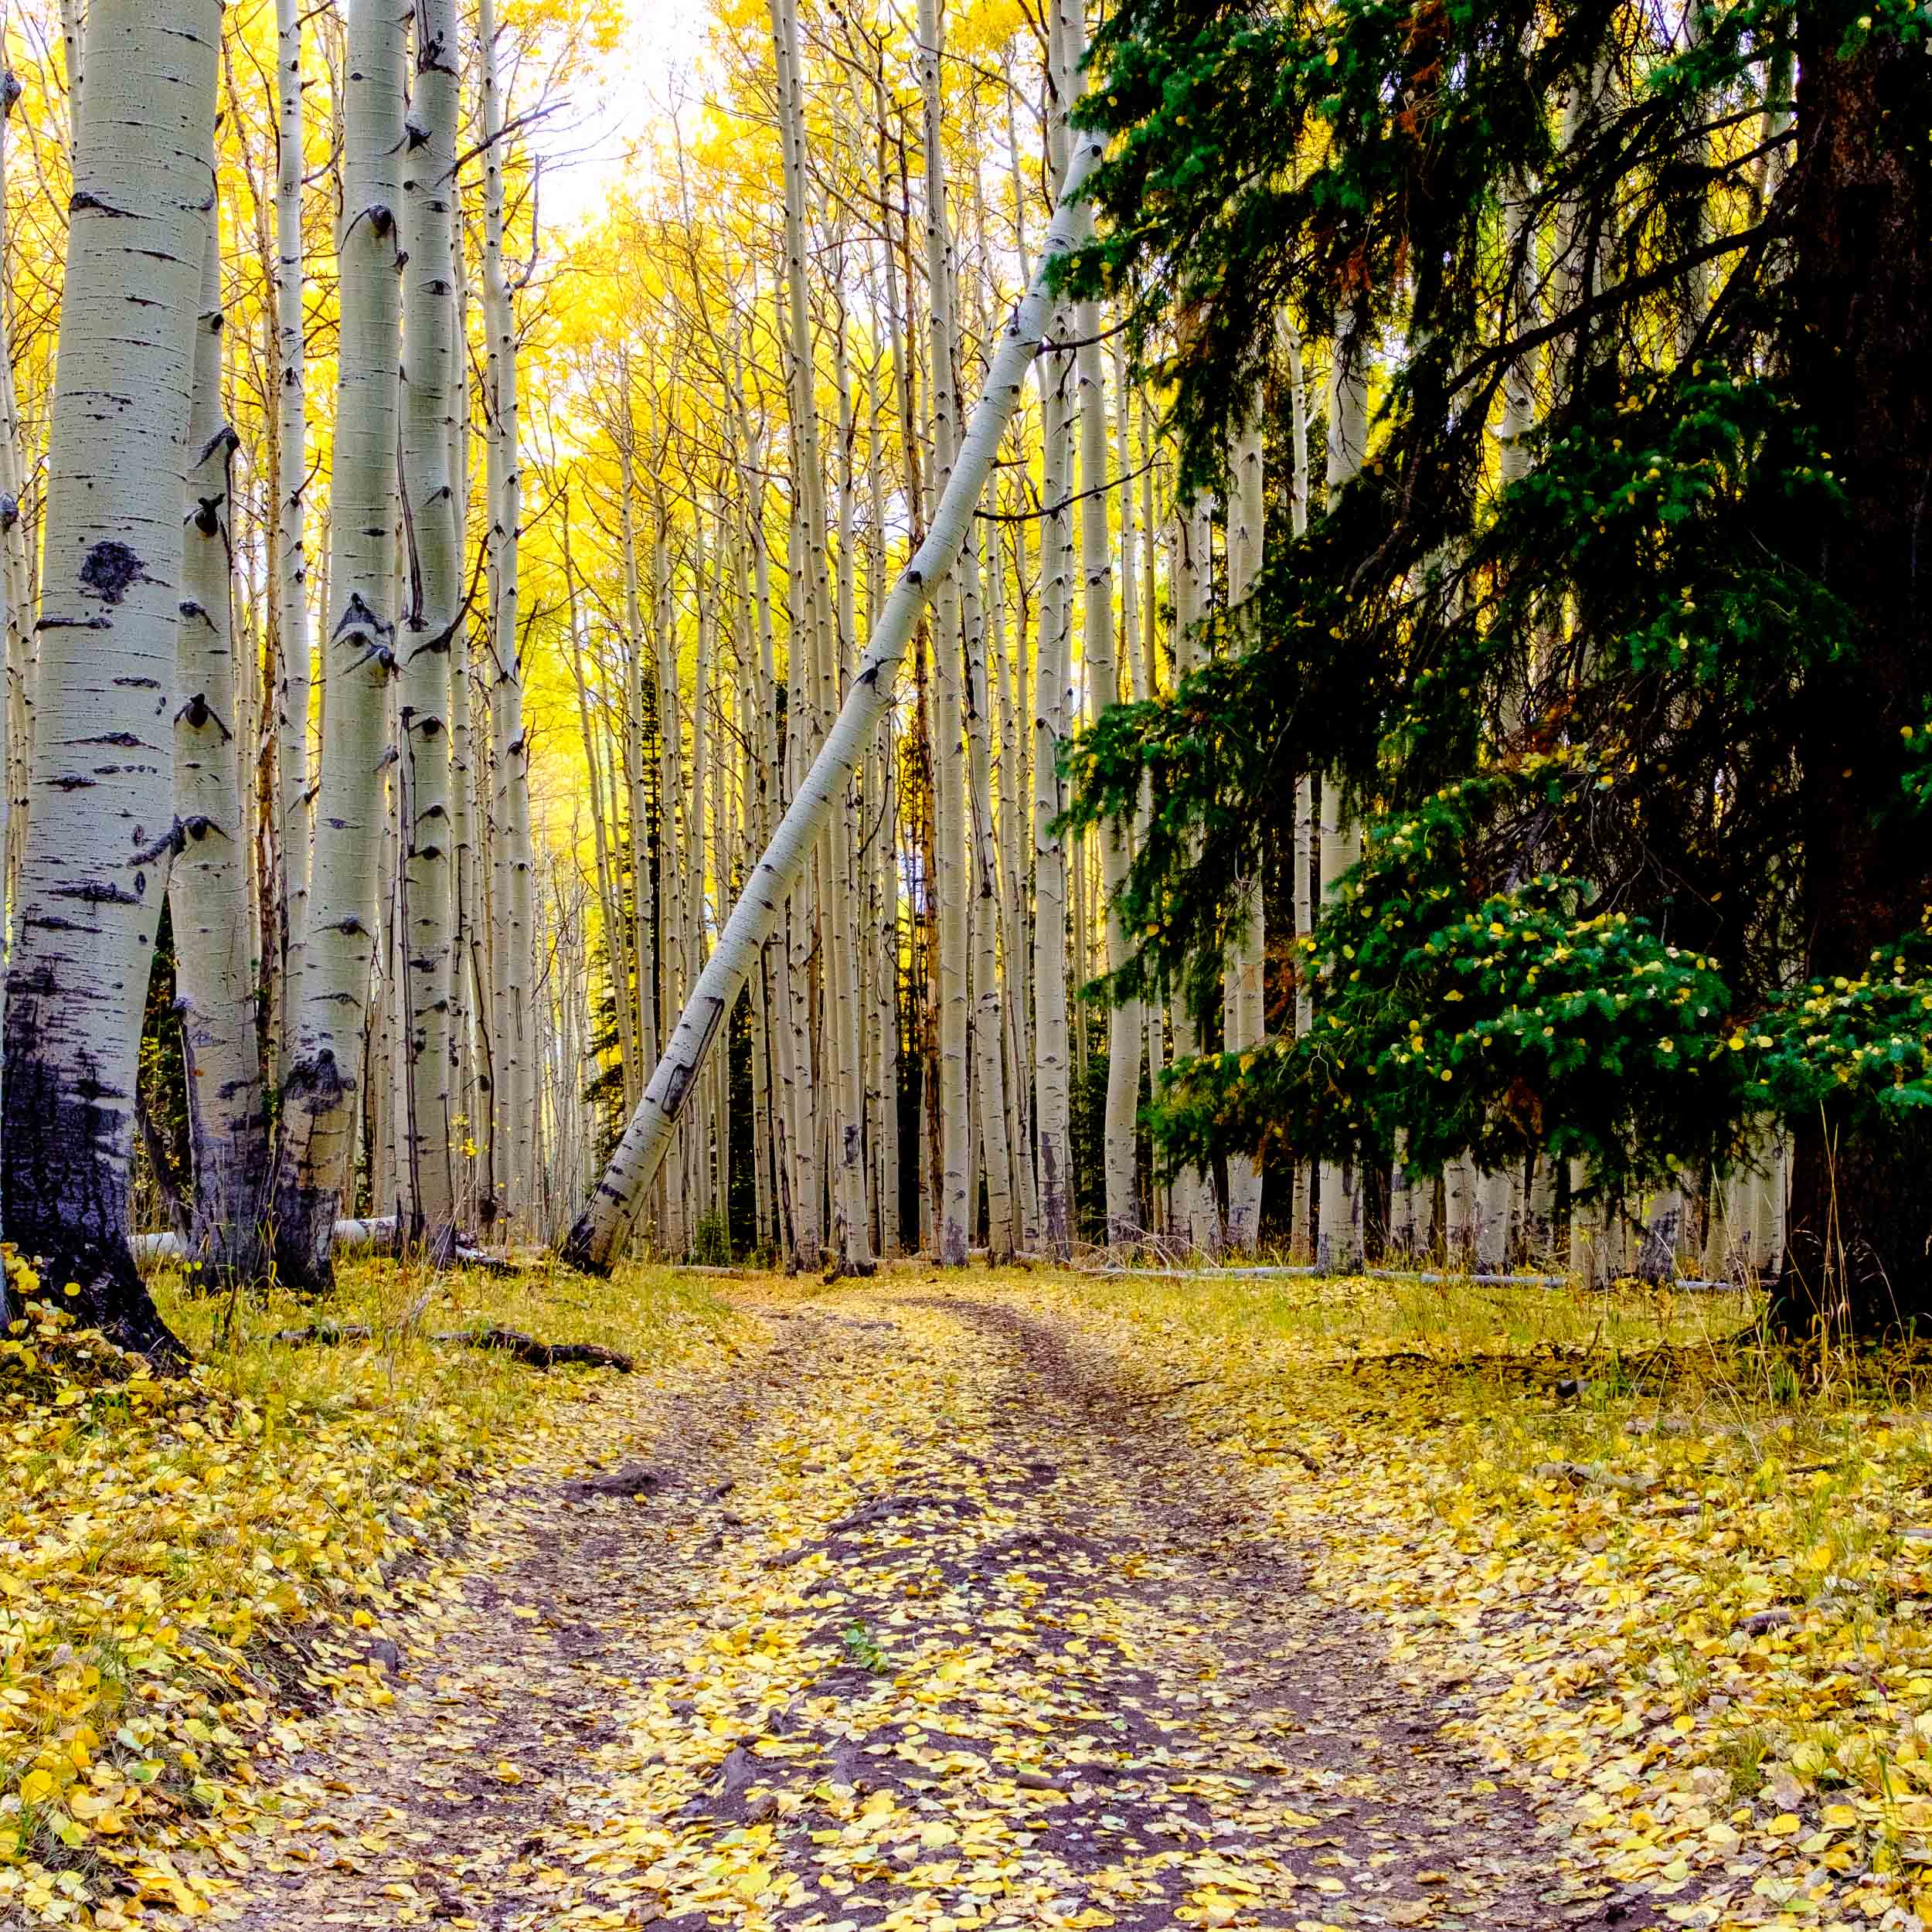 Fall aspen leaves line a remote trail through the Uncompahgre National Forest - Fuji XT2, XF 23mm f/2 WR